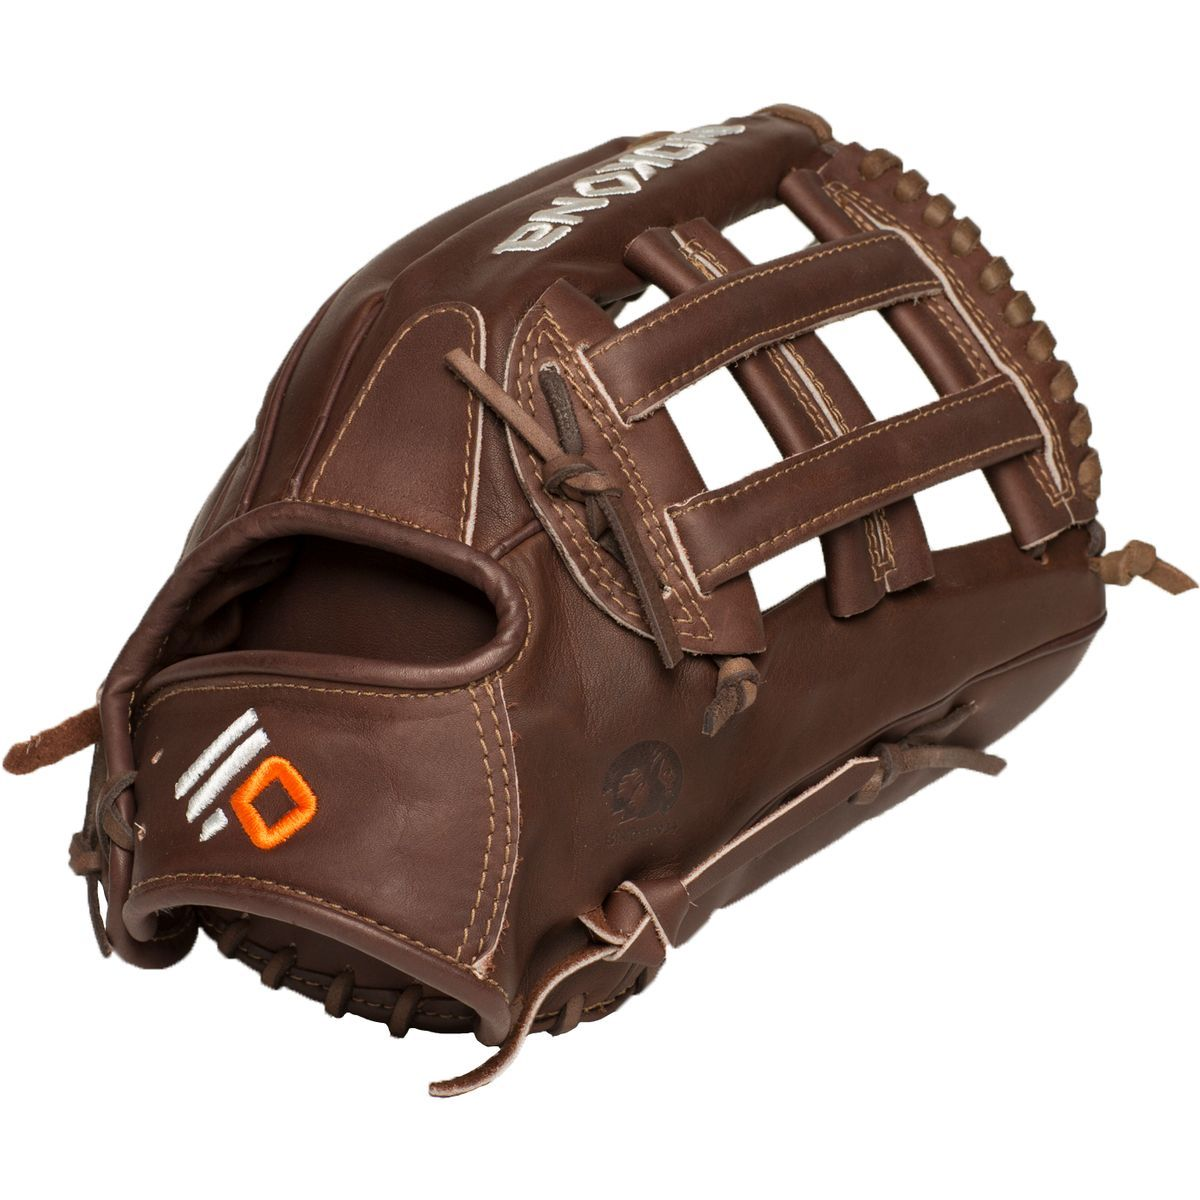 Nokona's elite performance, ready-for-play, position-specific series. The X2 Elite™ is made with Nokona's proprietary top-grain Stampede™ Steerhide and Kangaroo leathers, so that minimal break-in is needed, but the glove has great structure and maintains its shape. A perfect combination of top quality and high performance.